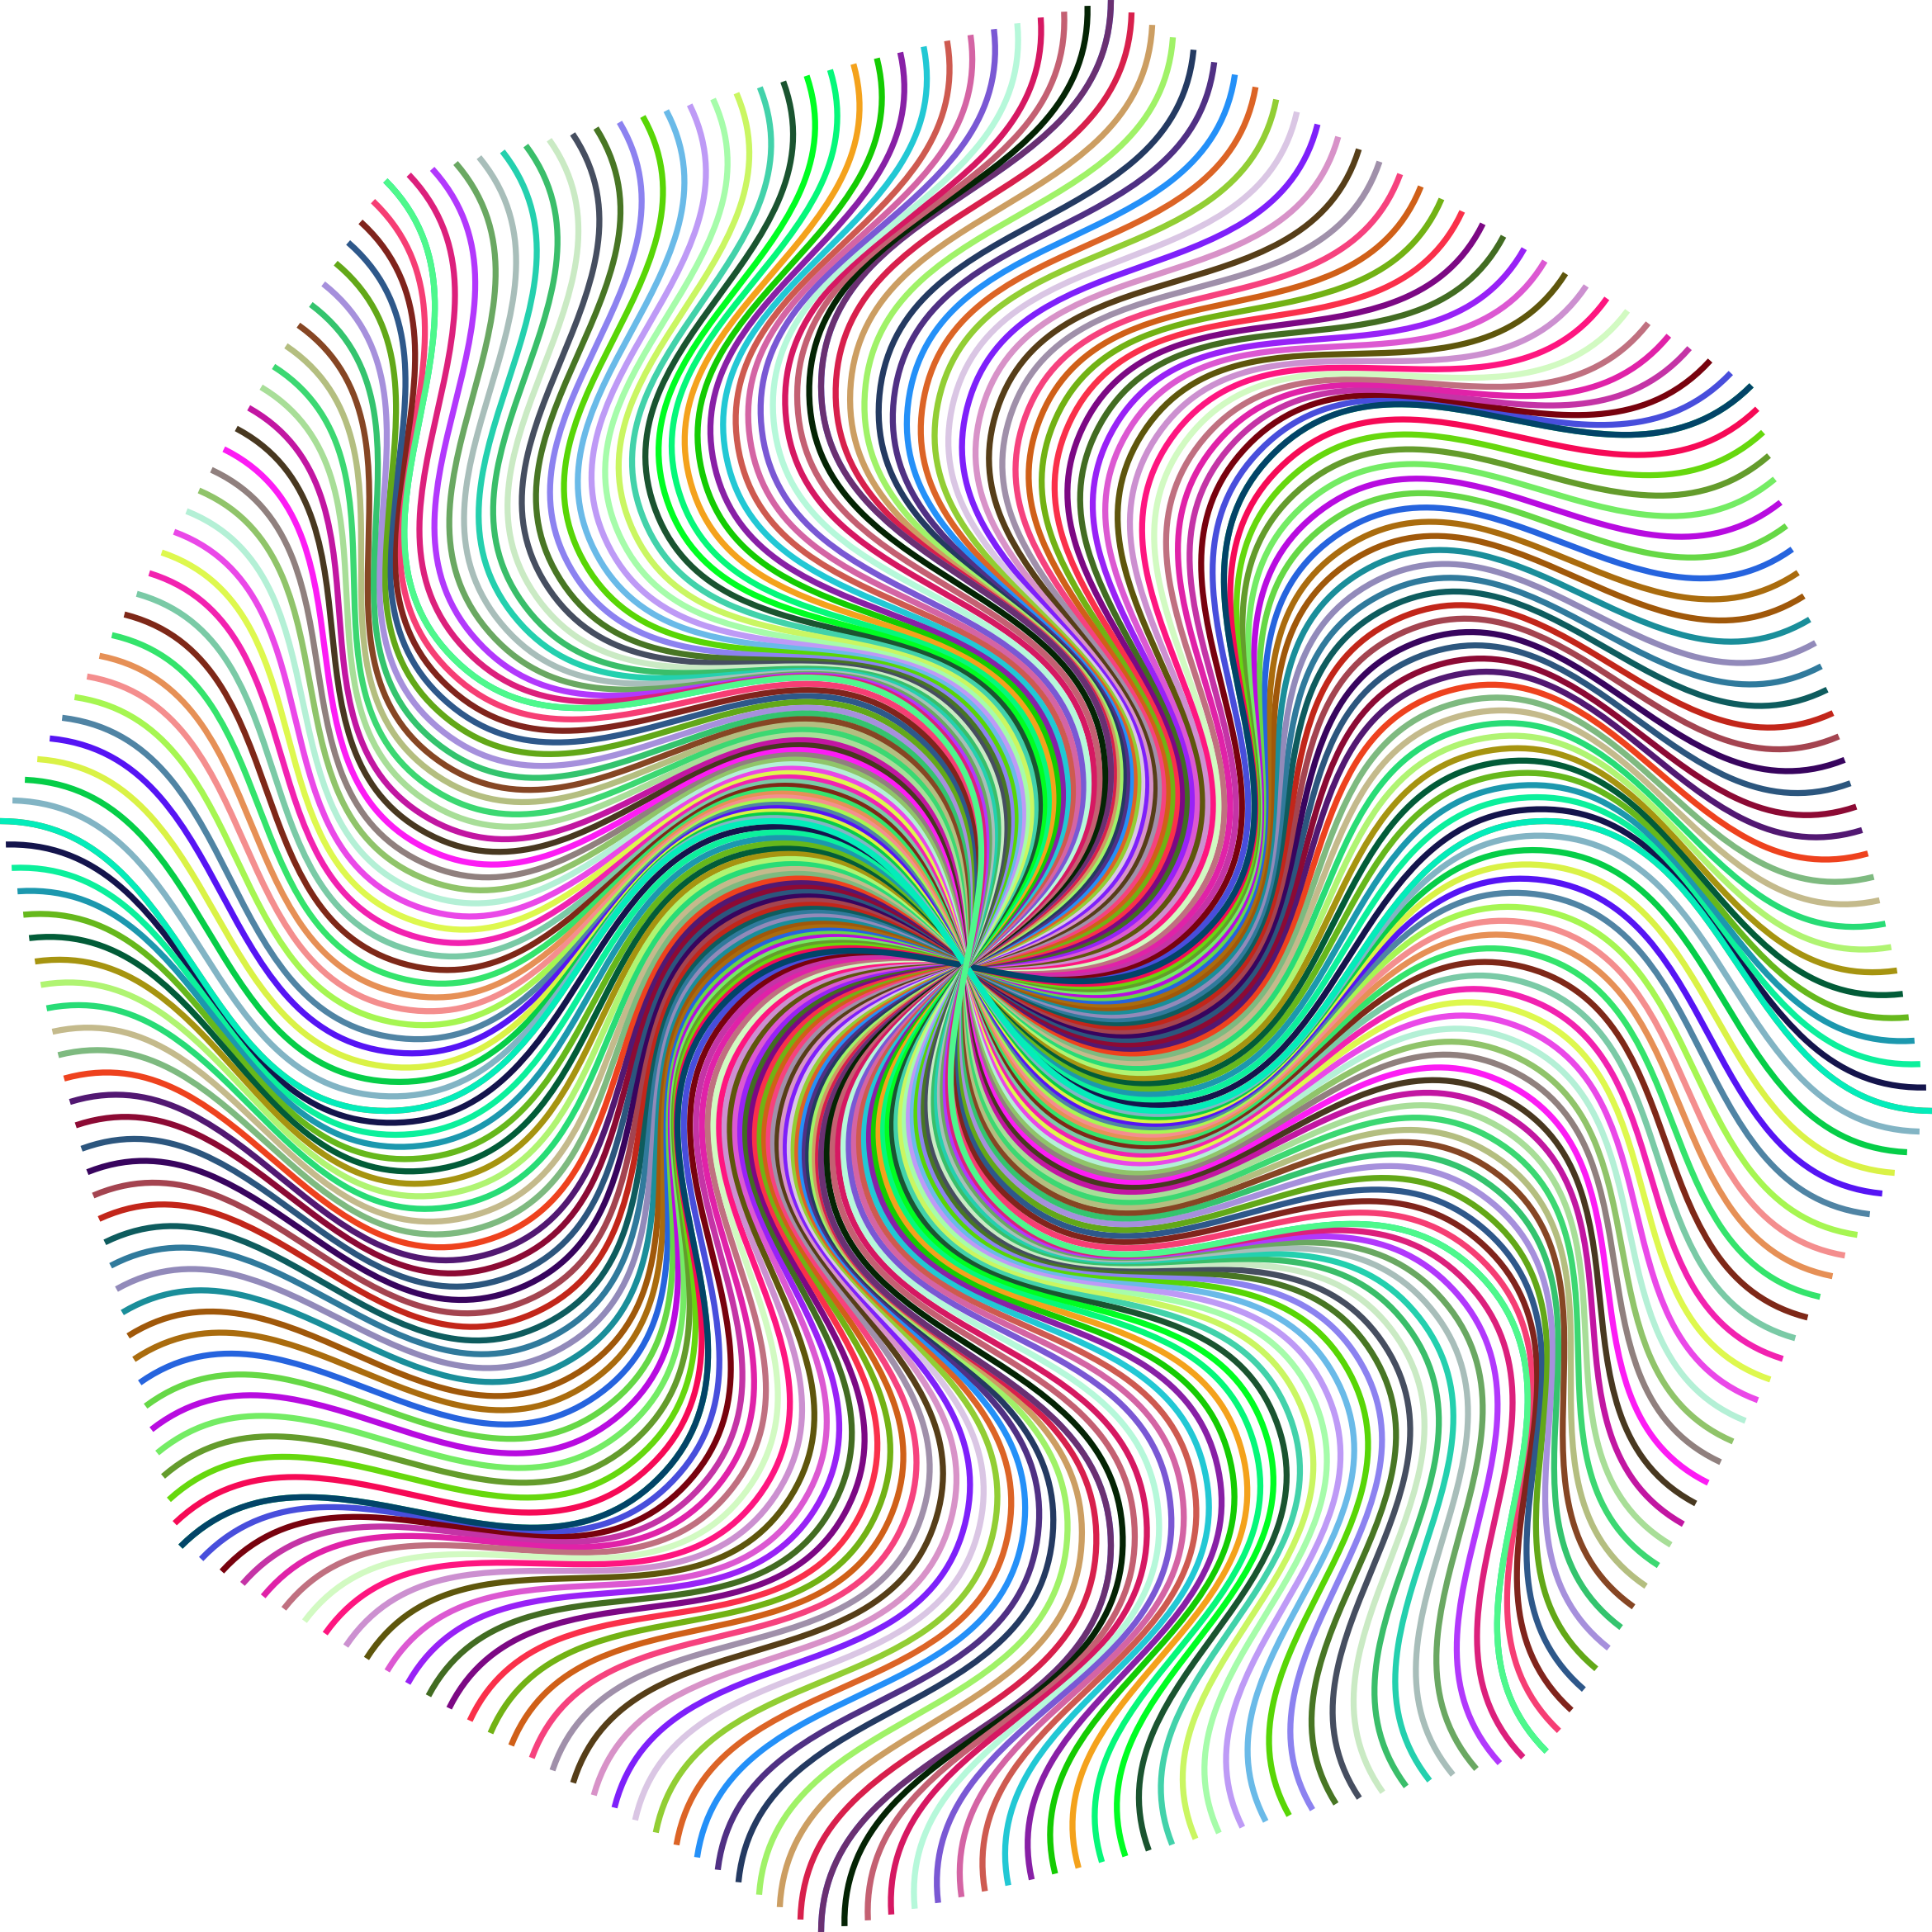 Line Art No Background : Clipart prismatic pinwheel line art no background